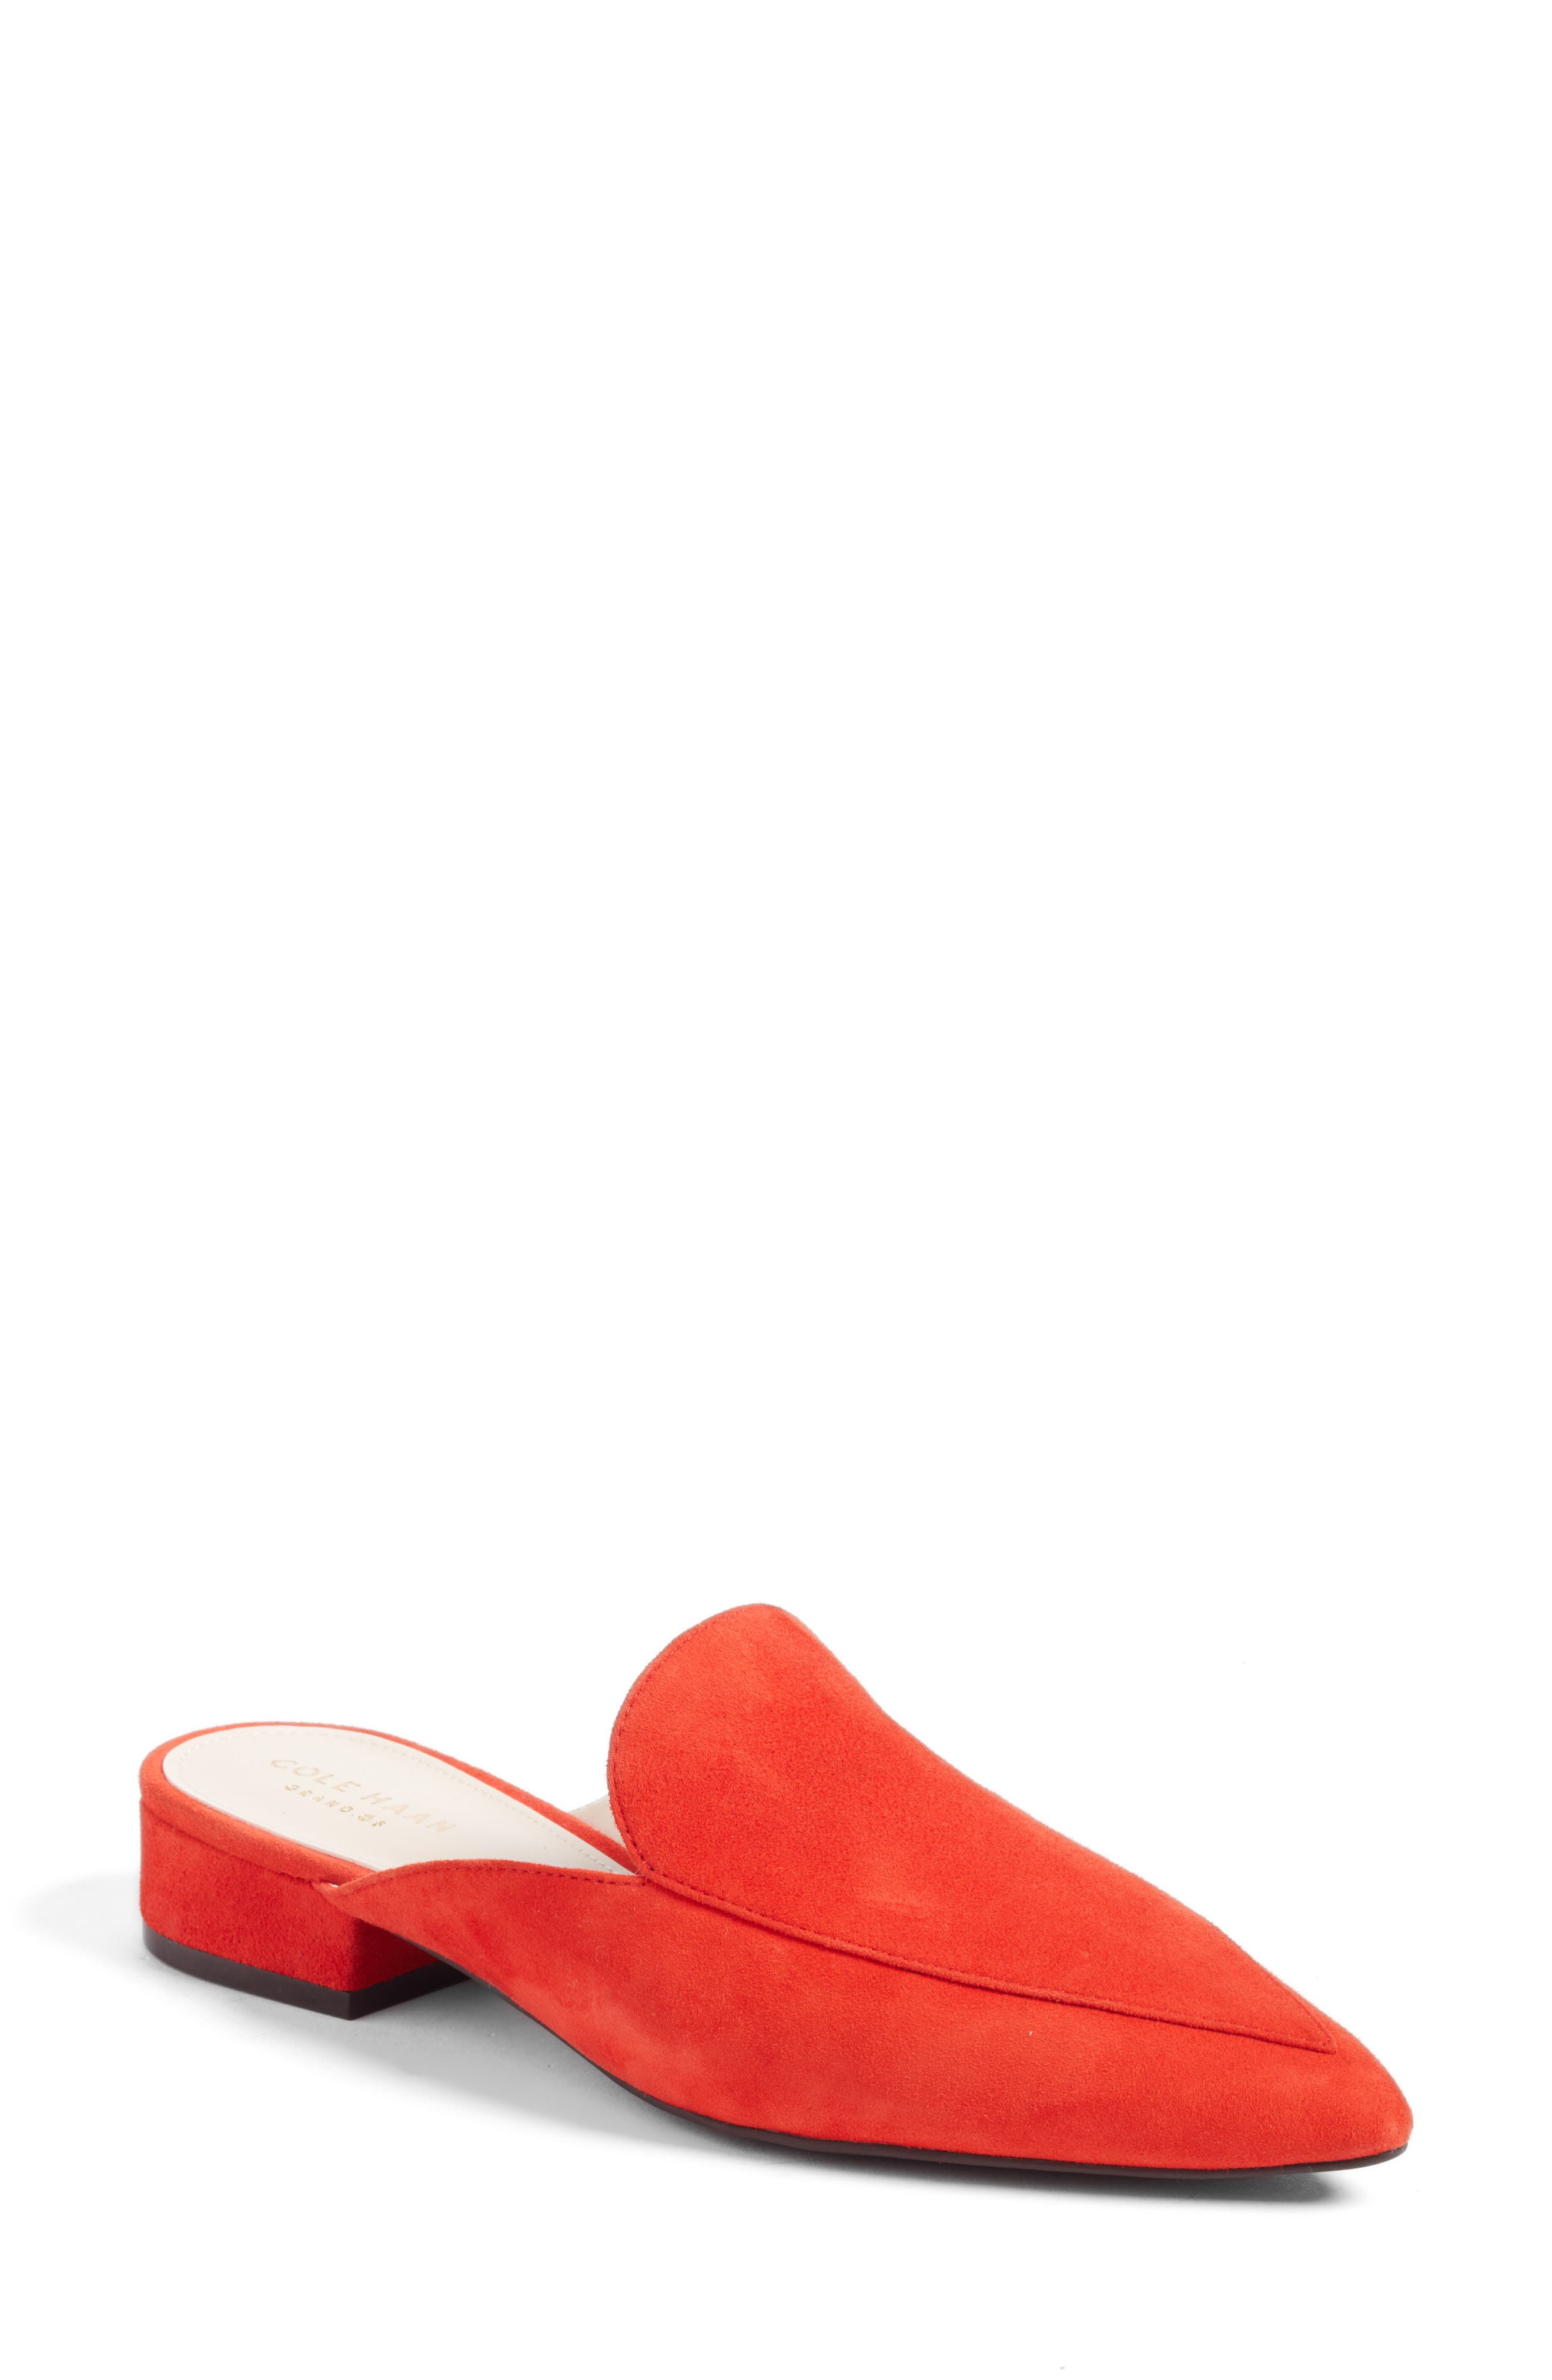 Alternate Image 1 Selected - Cole Haan Piper Loafer Mule (Women)